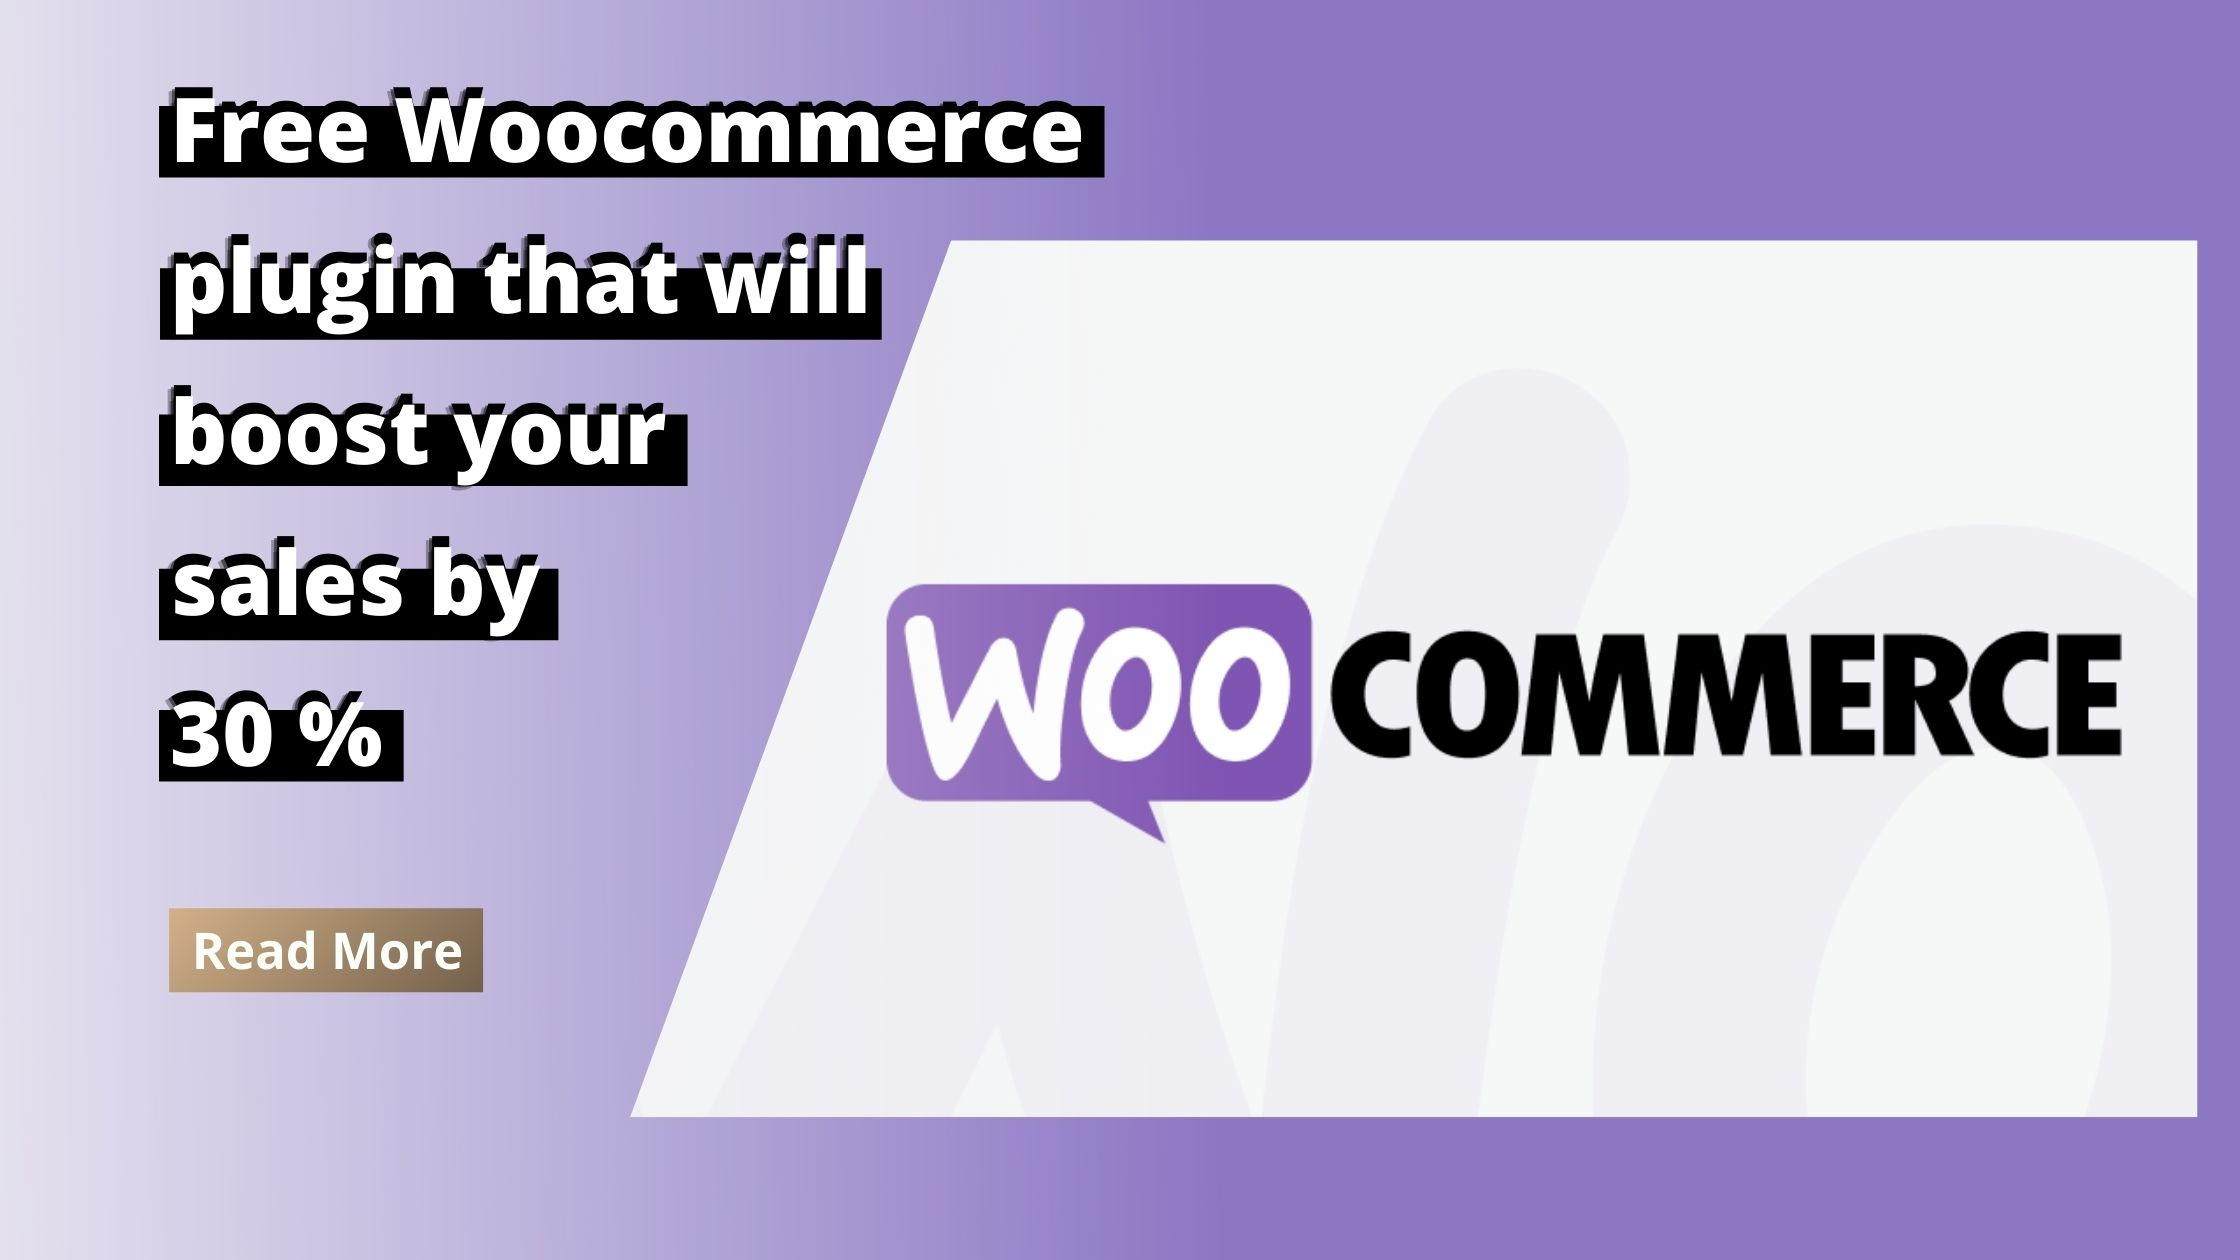 Free WooCommerce plugin that will boost your sales by 30%